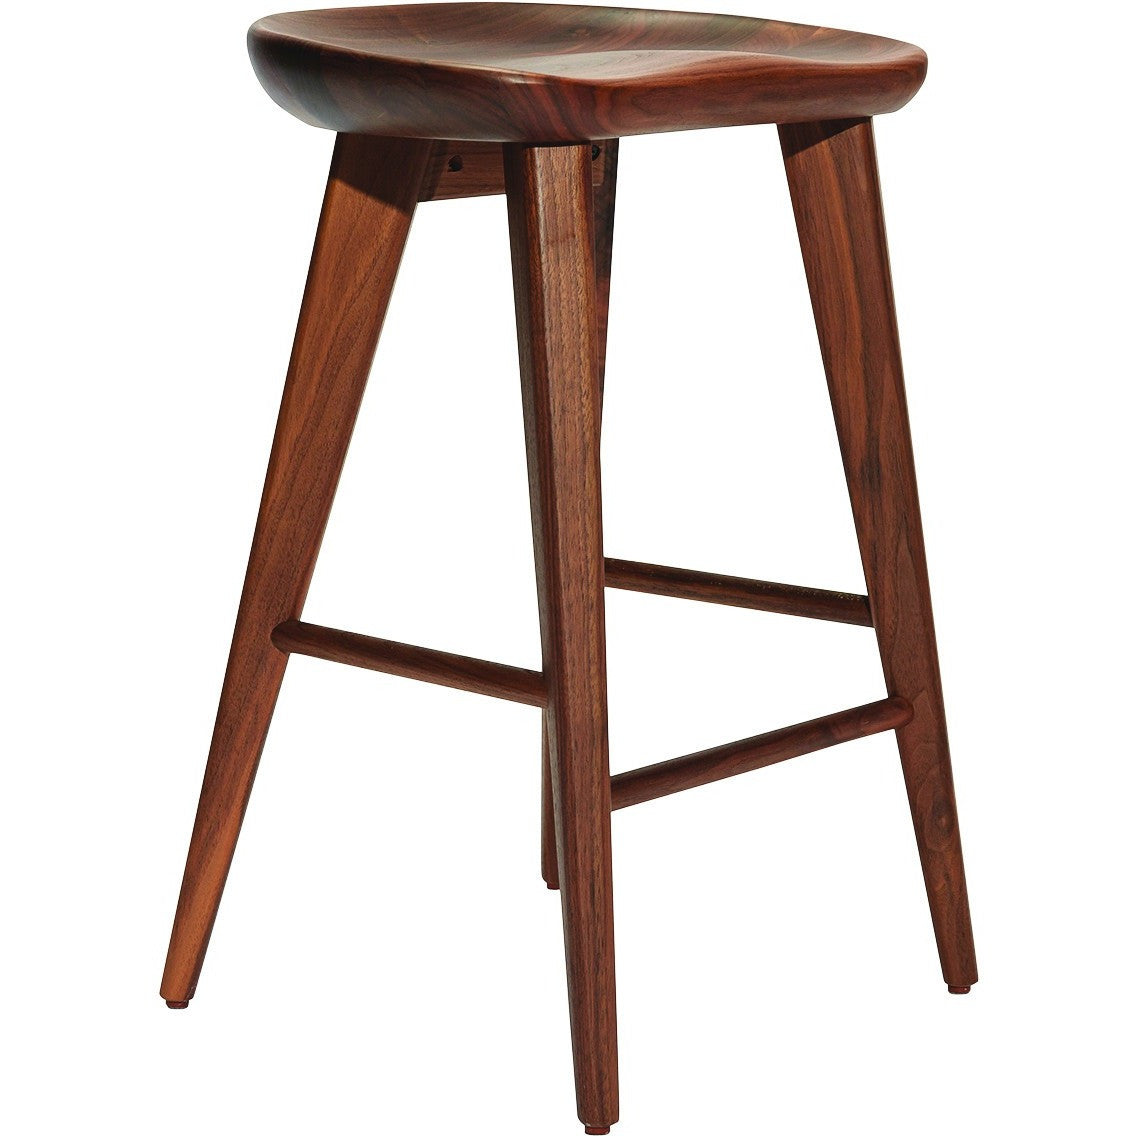 Taburet Counter or Bar Stool Walnut With Matte Finish P-1002 by Ion Design  sc 1 st  Luxe Wood Furnishings & Taburet Counter or Bar Stool Walnut With Matte Finish P-1002 by ... islam-shia.org